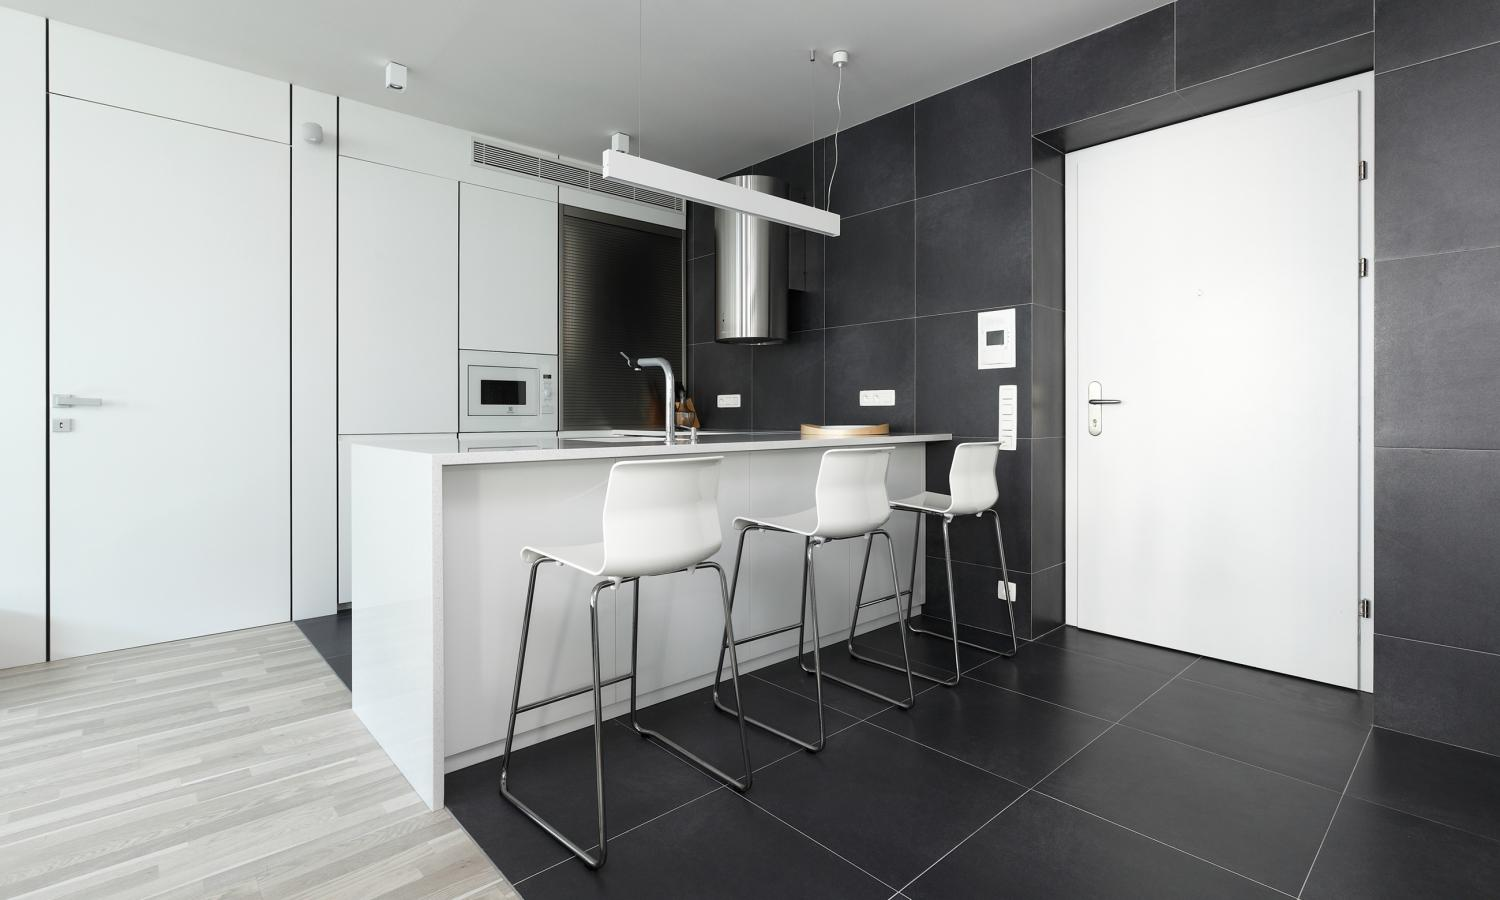 Kitchens rules architects for Separate kitchen units